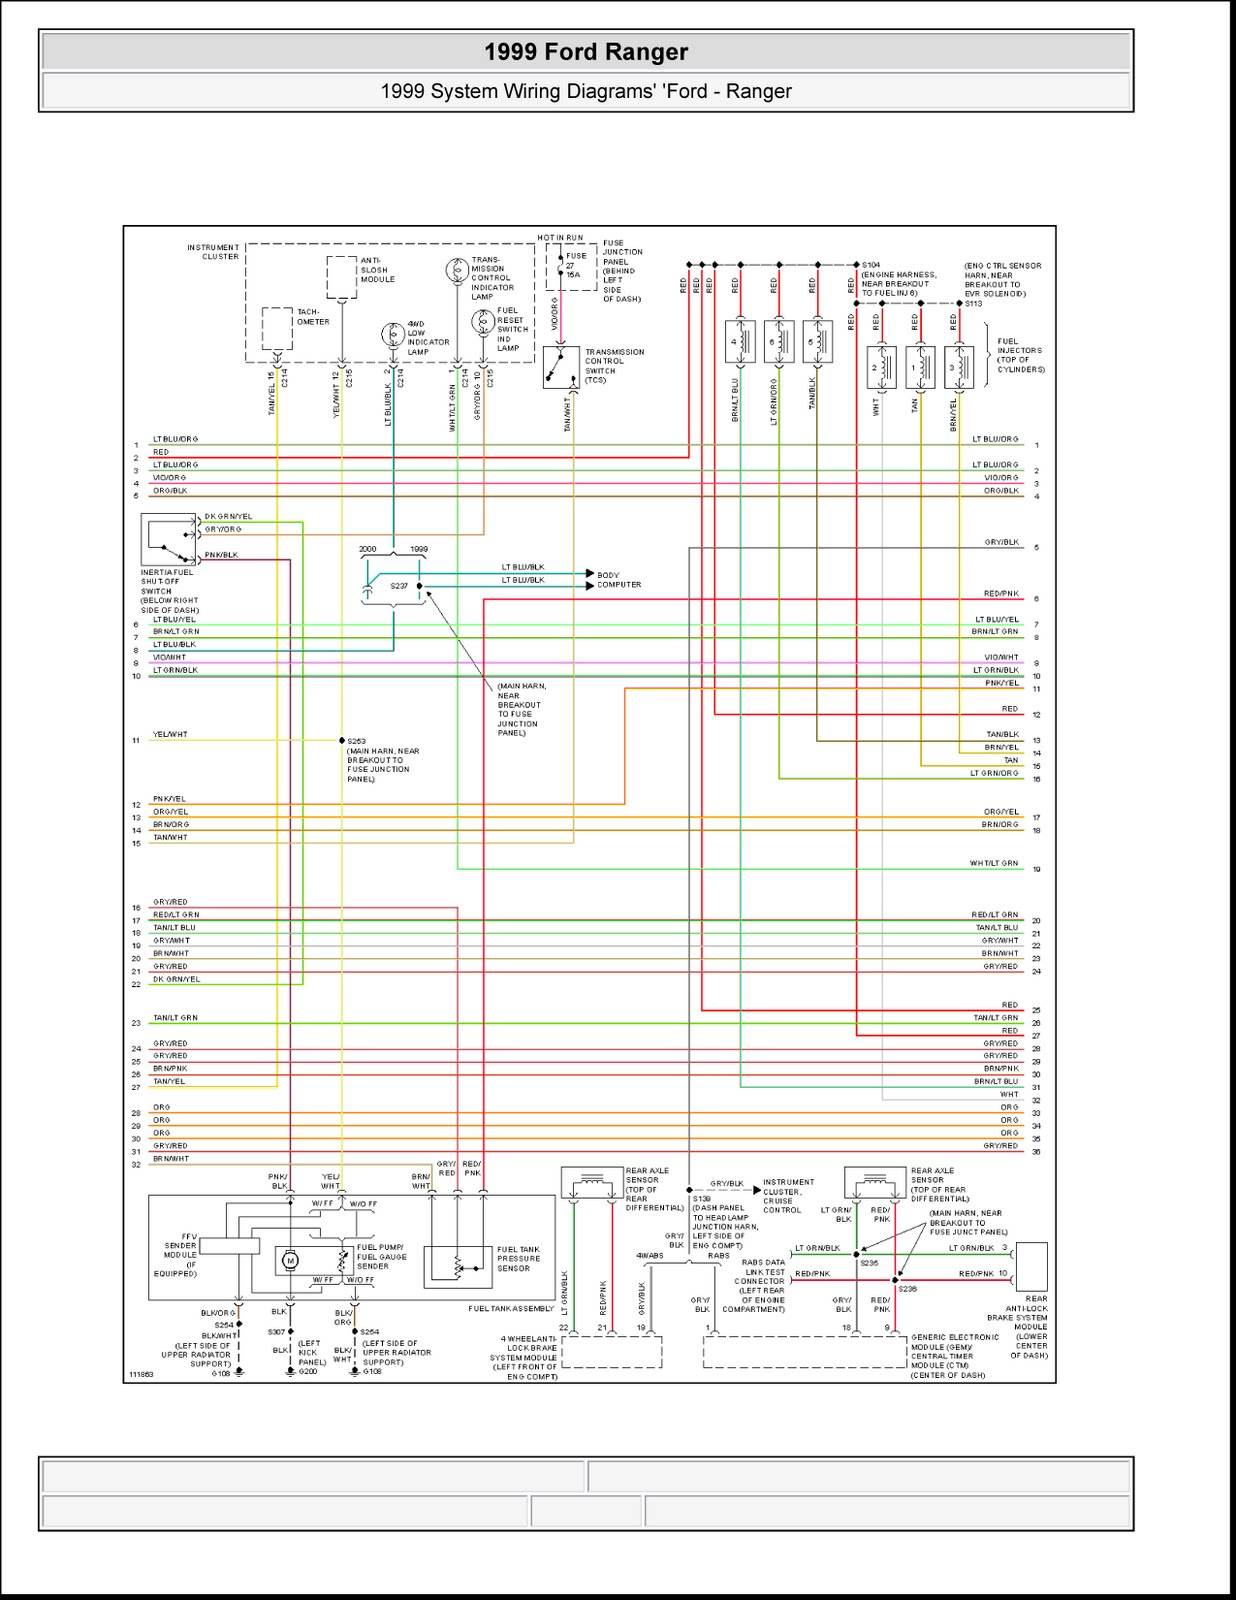 0003 1999 ford ranger system wiring diagrams 4 images wiring 1999 ford ranger ignition wiring diagram at alyssarenee.co